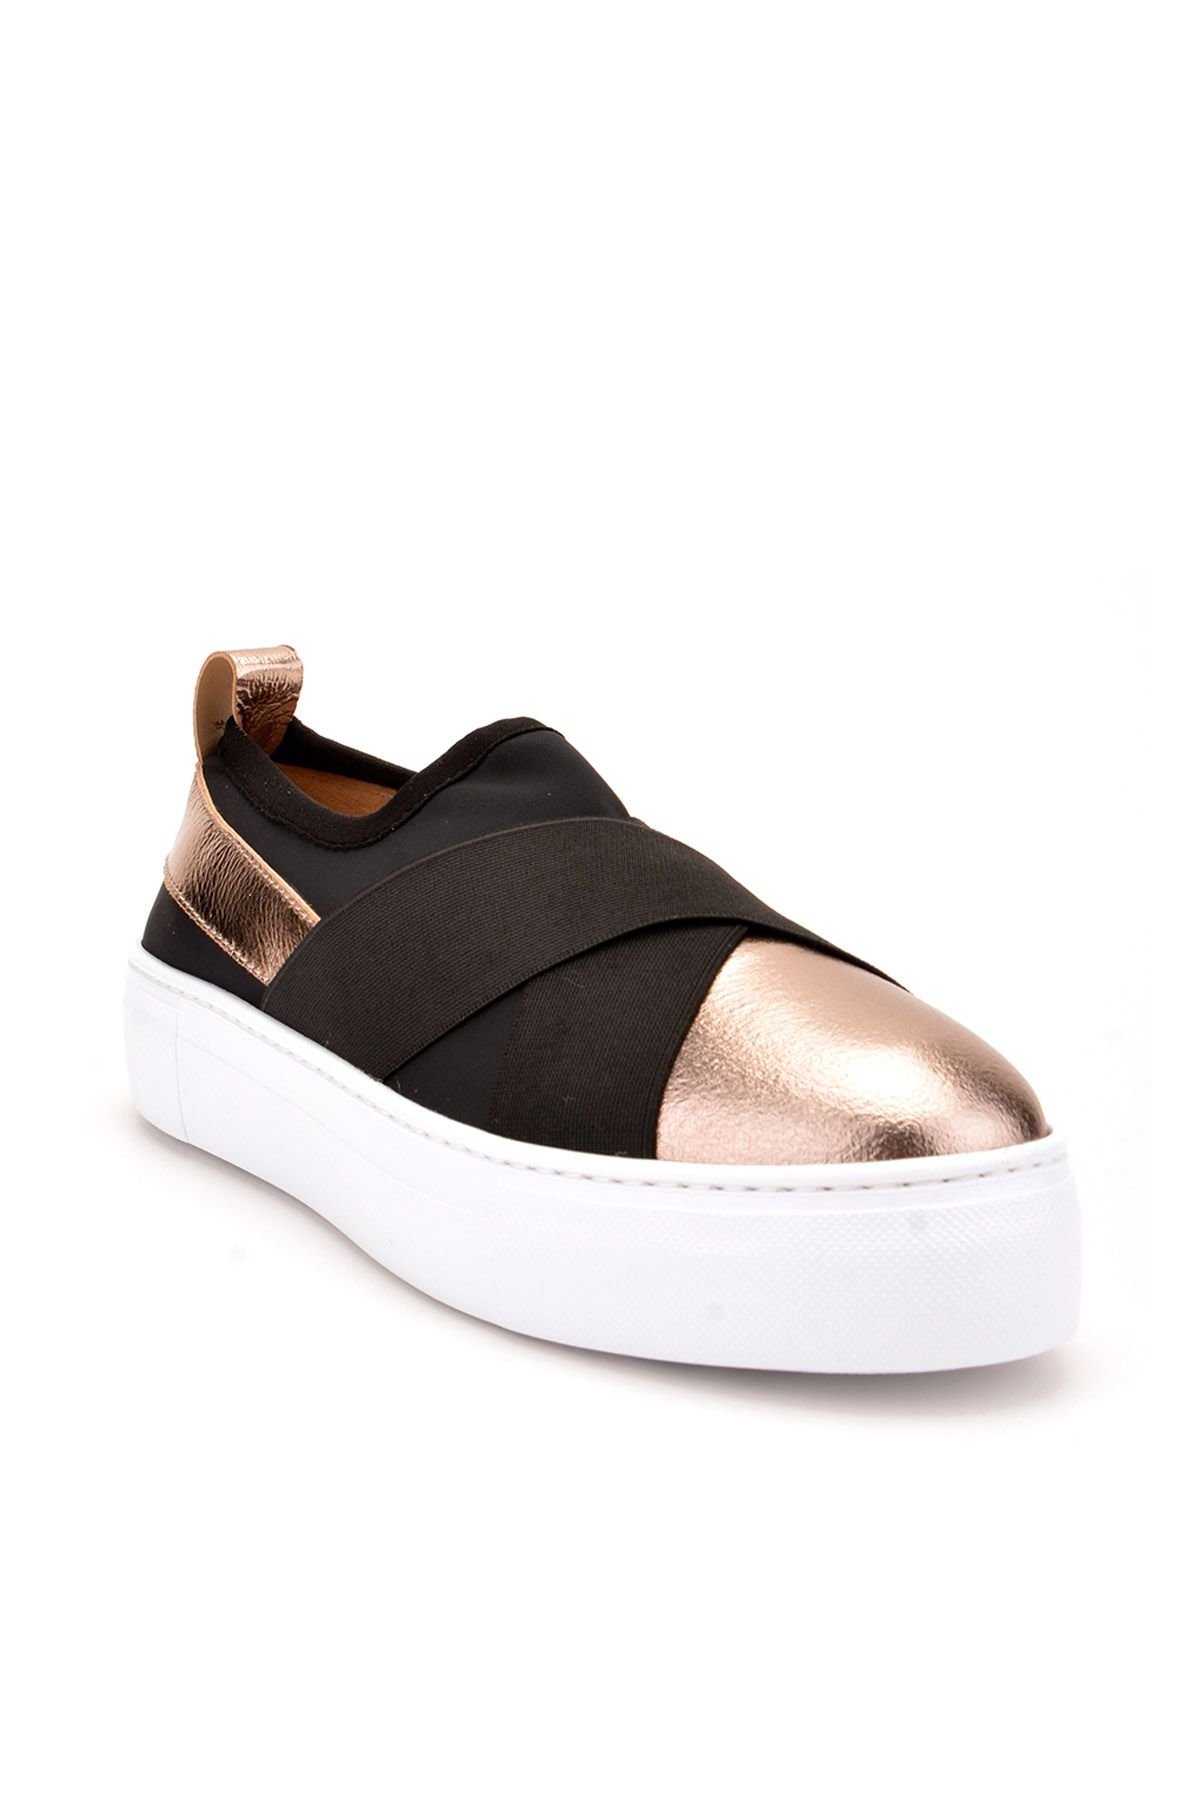 Pegia Voyage Casual Shoes From Genuine Leather Bronze